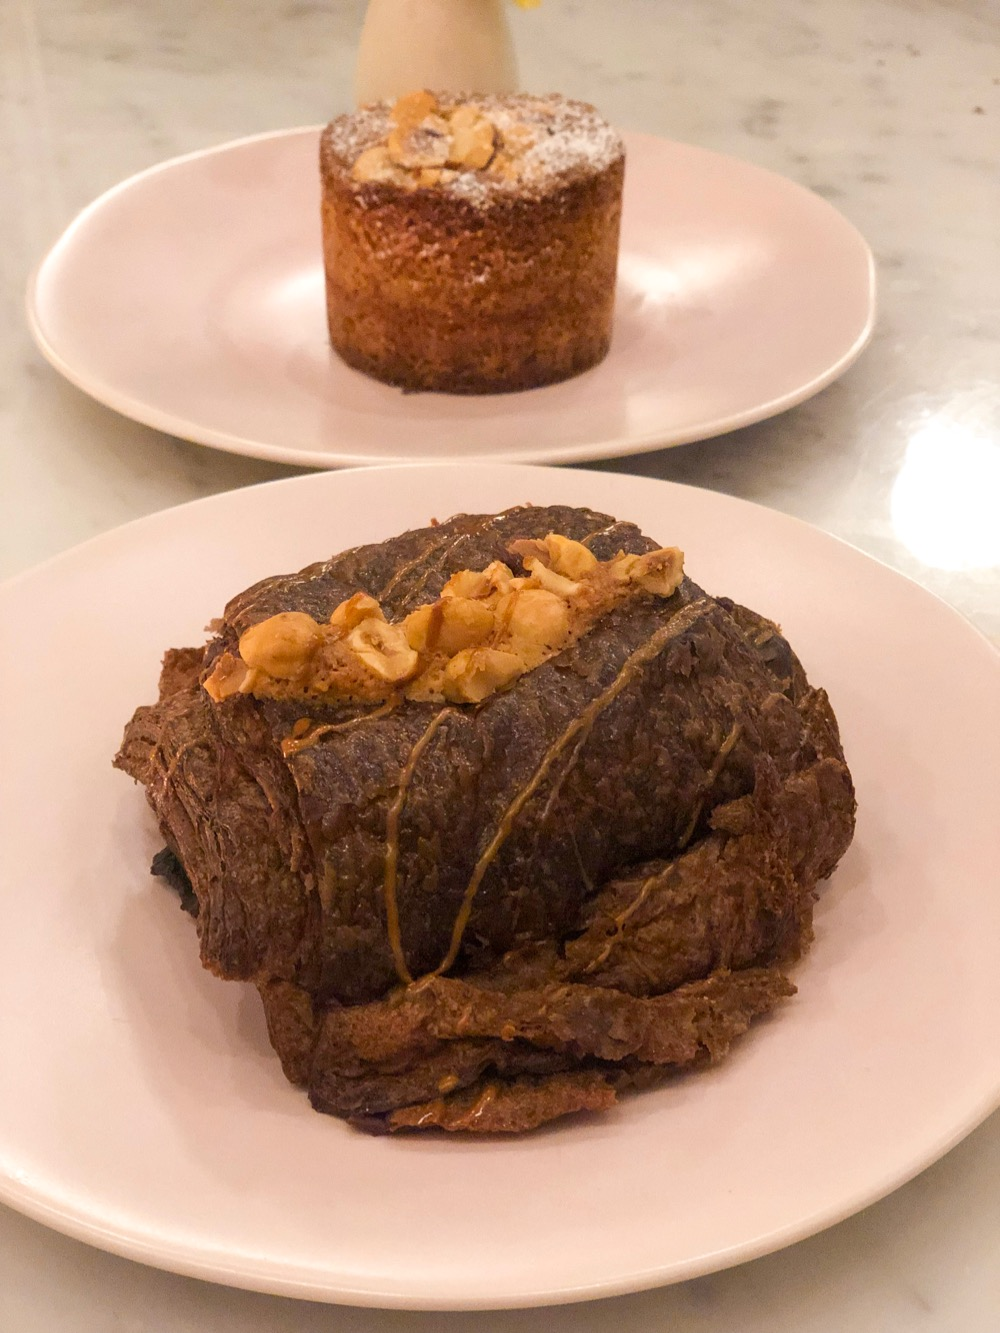 Distinctive and flavorful pastries at Lost Larson